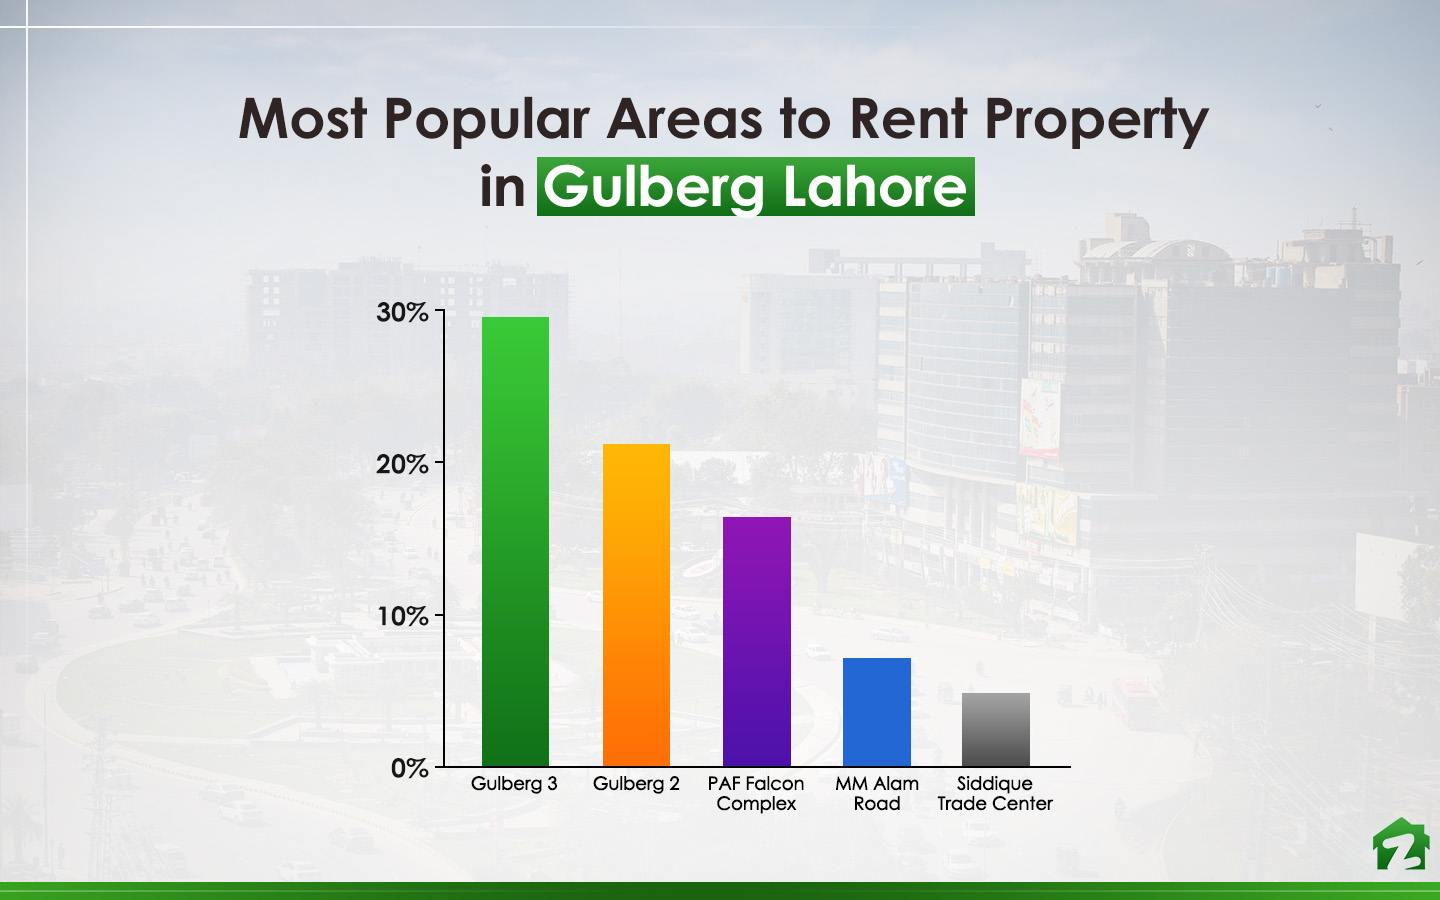 Gulberg 3 is most popular when it comes to living on rent